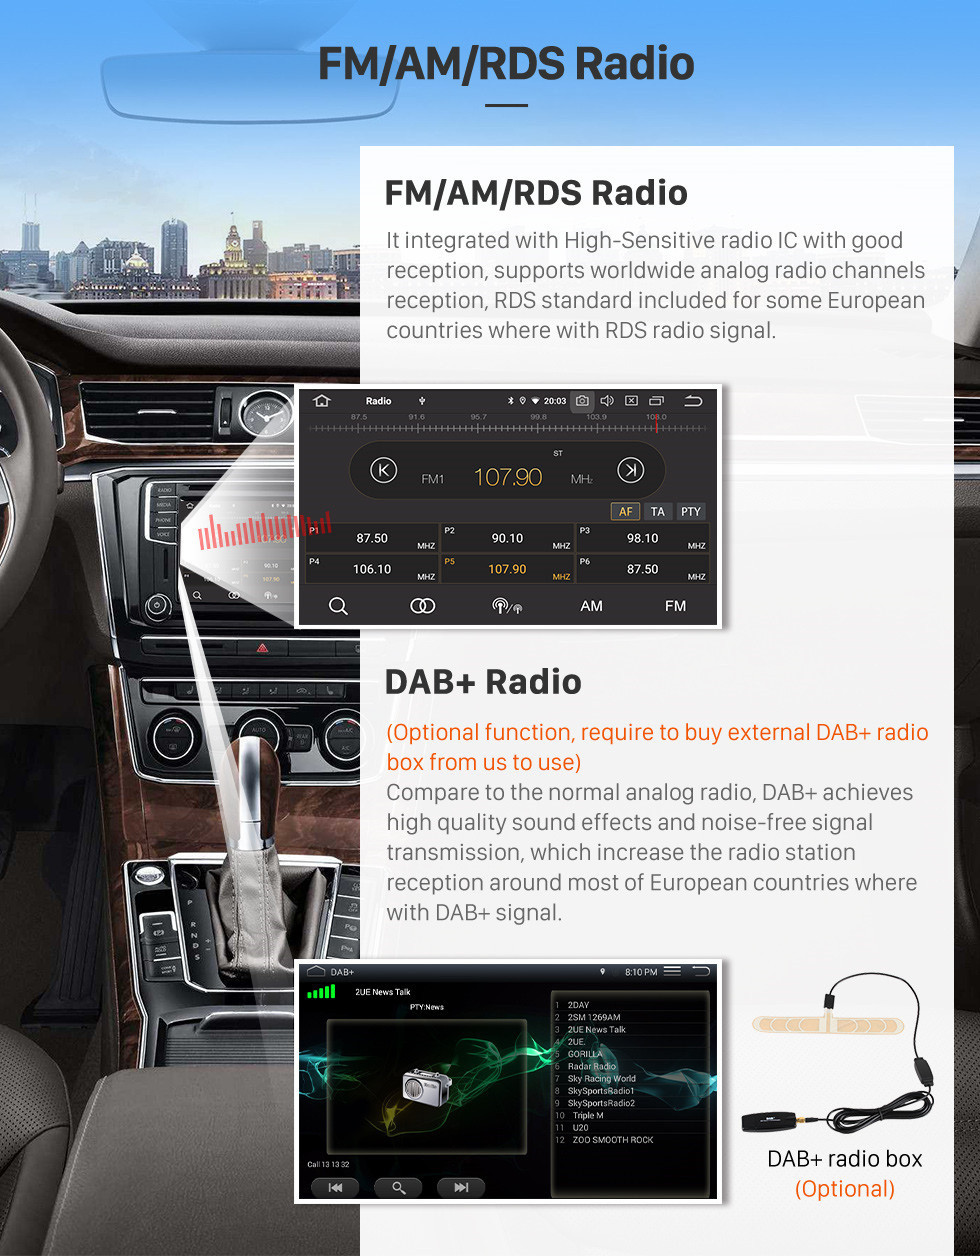 Seicane HD Touchscreen 8 inch Android 10.0 GPS Navigation Radio for 1998-2006 BMW 3 Series E46 M3/2001-2004 MG ZT/1999-2004 Rover 75 with Carplay Bluetooth support TPMS